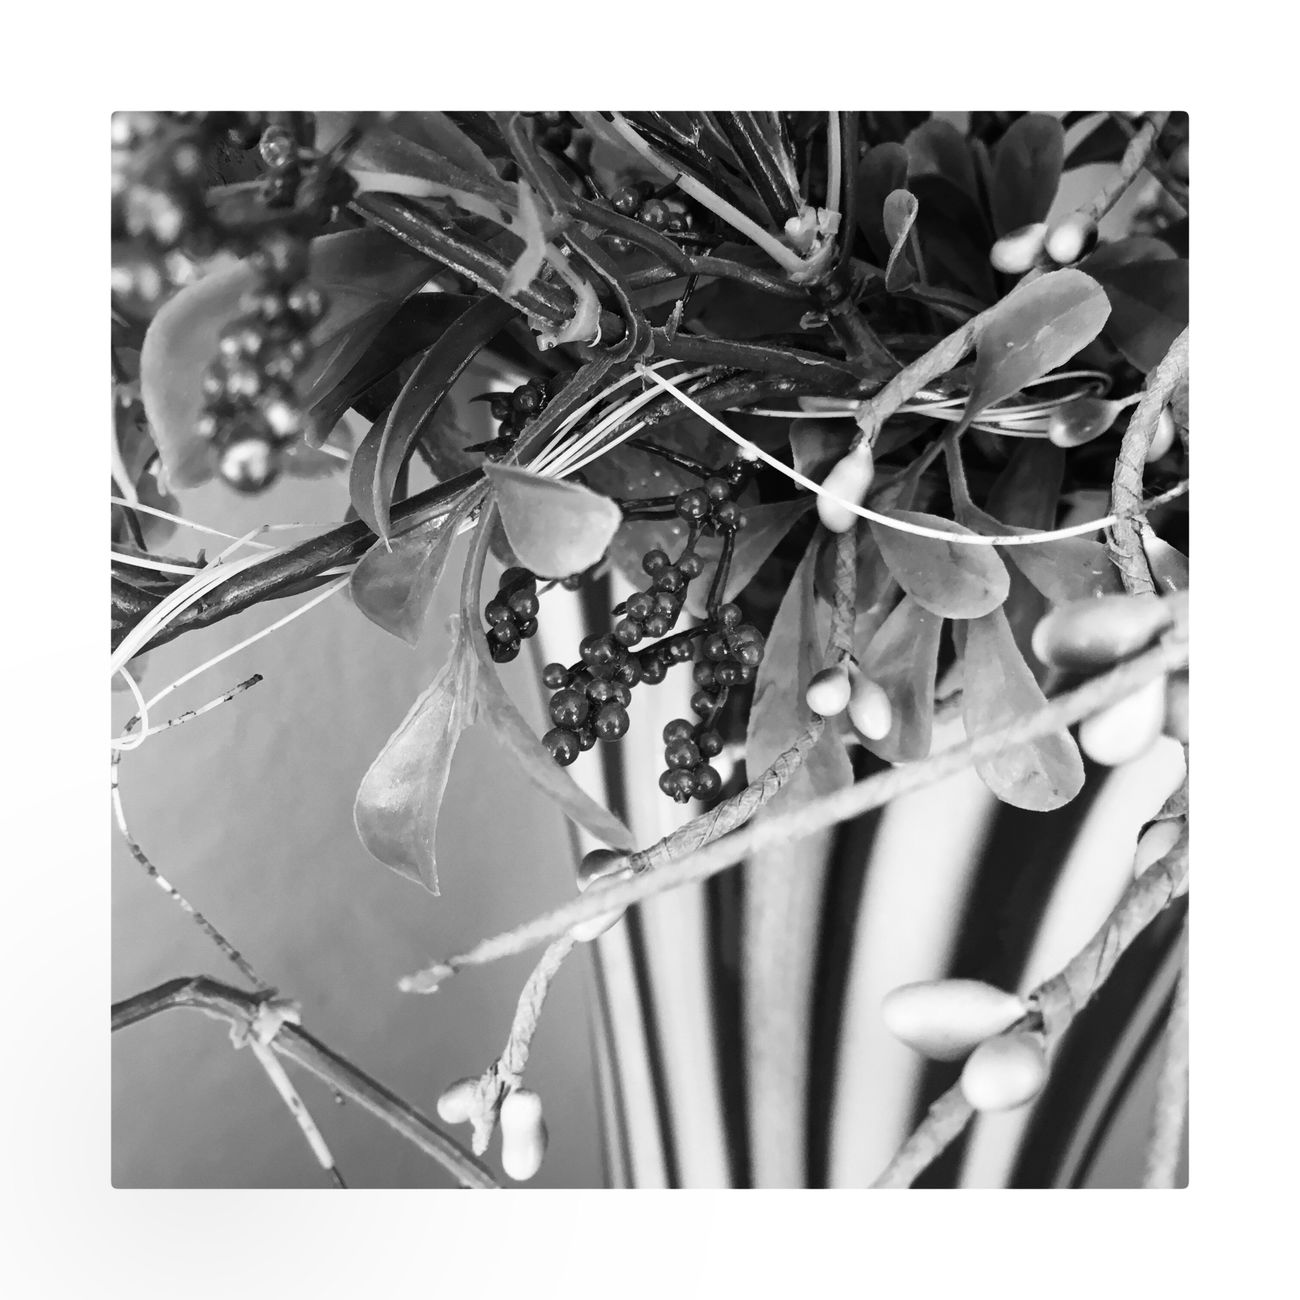 Close-up No People Nature Day Outdoors Black And White Photography Monochrome Blackandwhite Home Interior